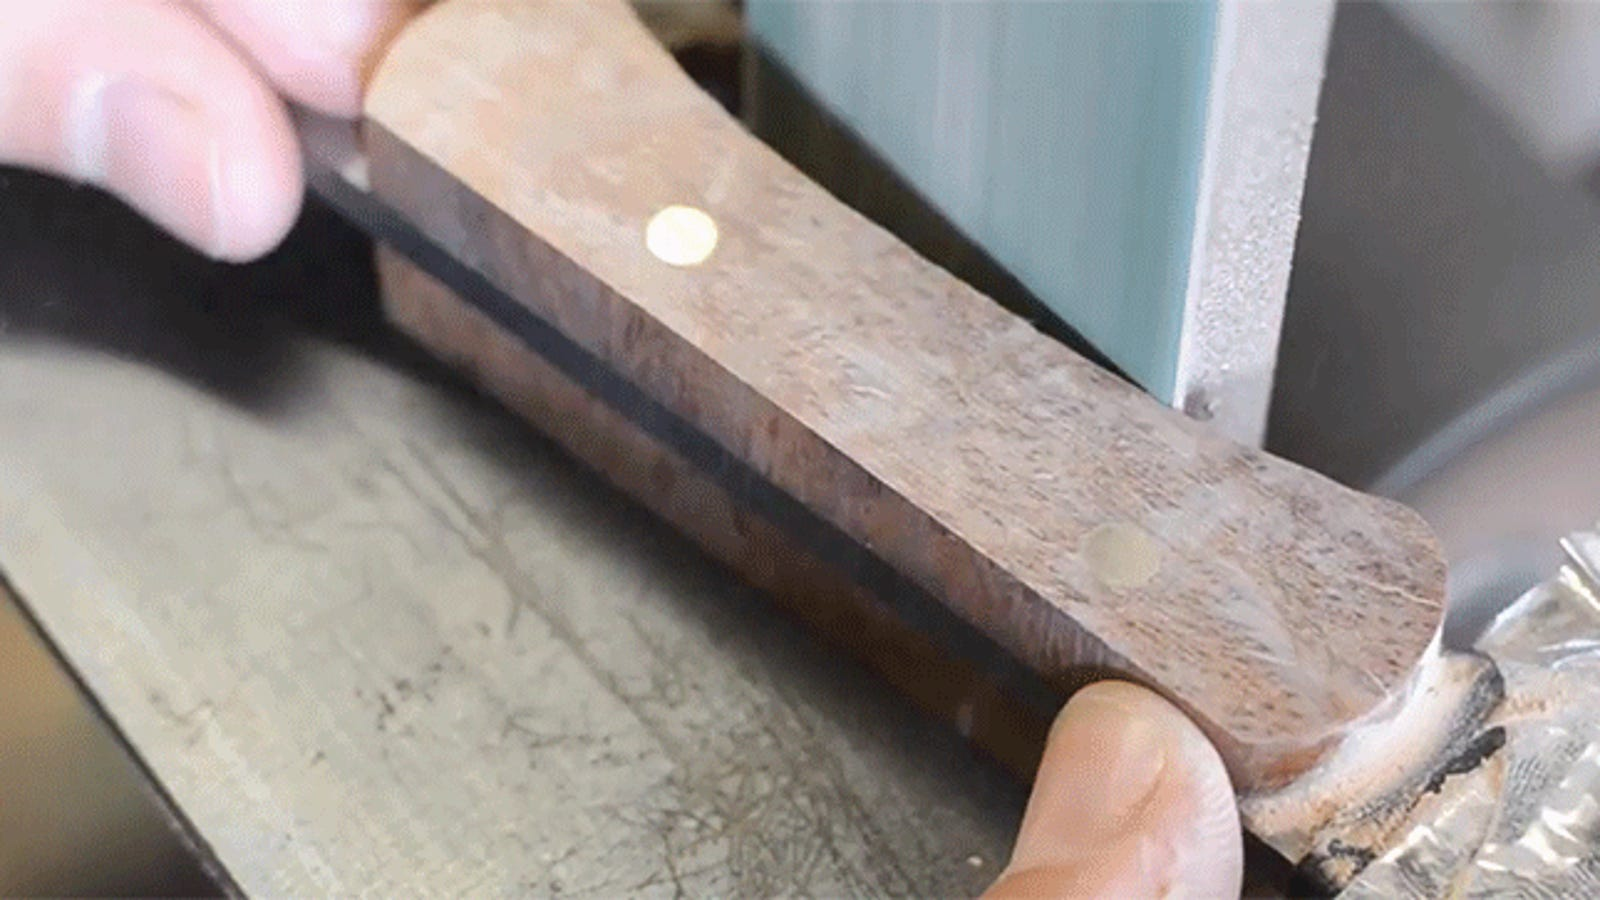 Let Your Brain Take a Nap While This Guy Builds a Kickass Japanese Utility Knife